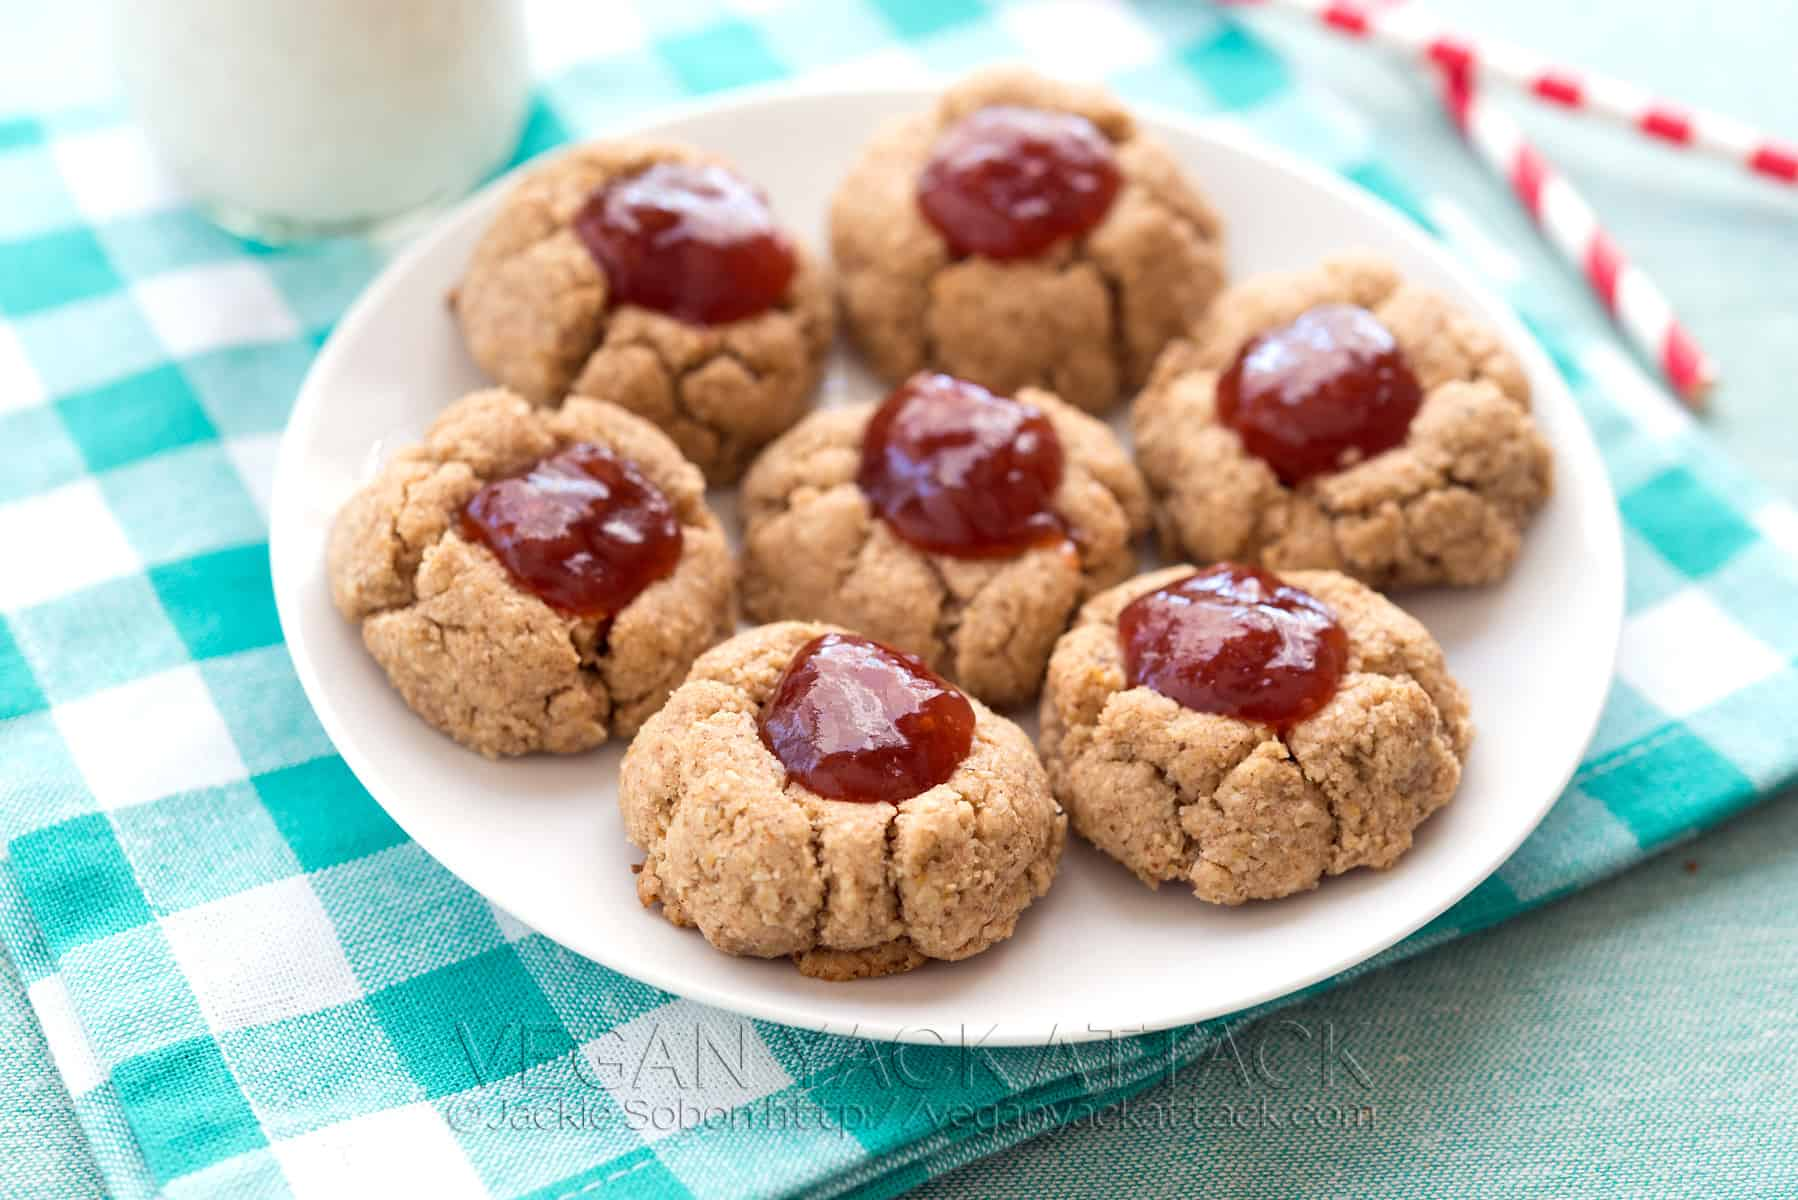 Almond butter jam thumbprint cookies on a white plate on a teal, checkered napkin